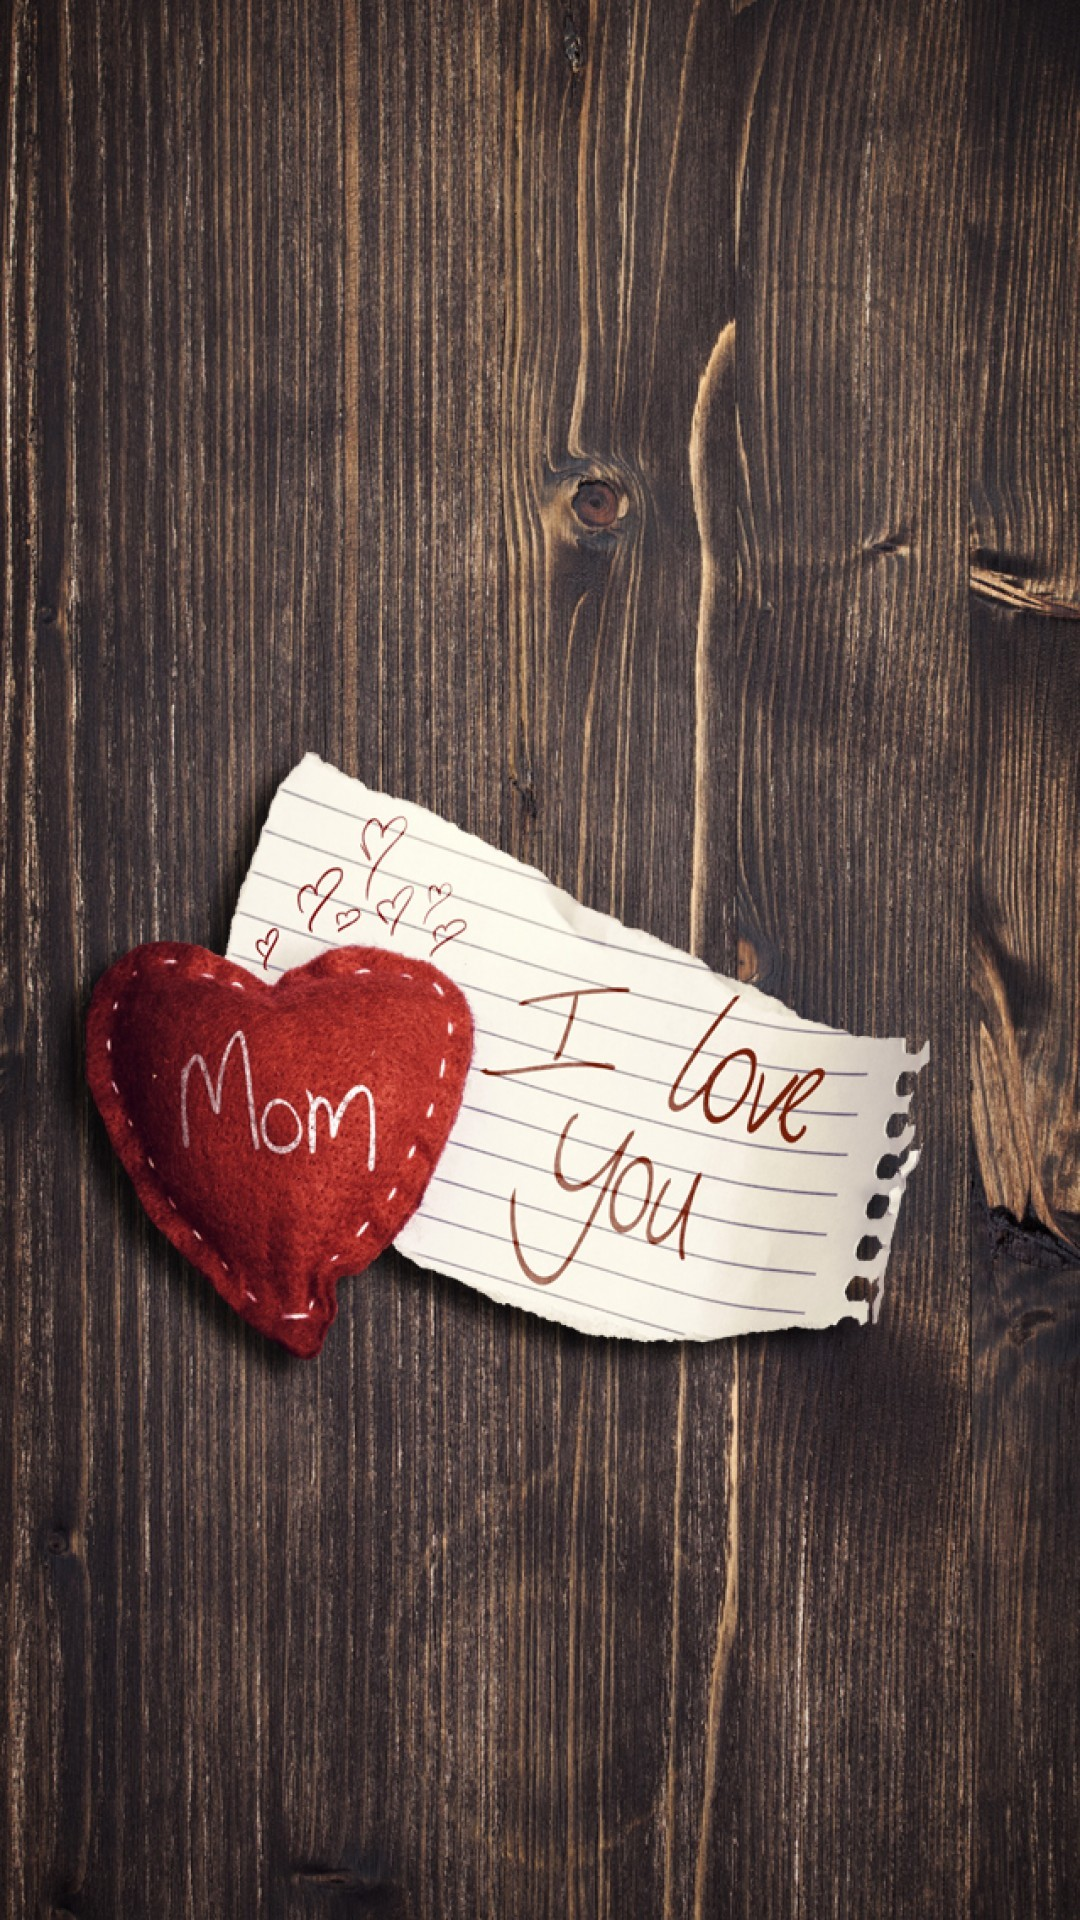 Happy Mood Quotes Wallpapers Mom Wallpaper 183 ①